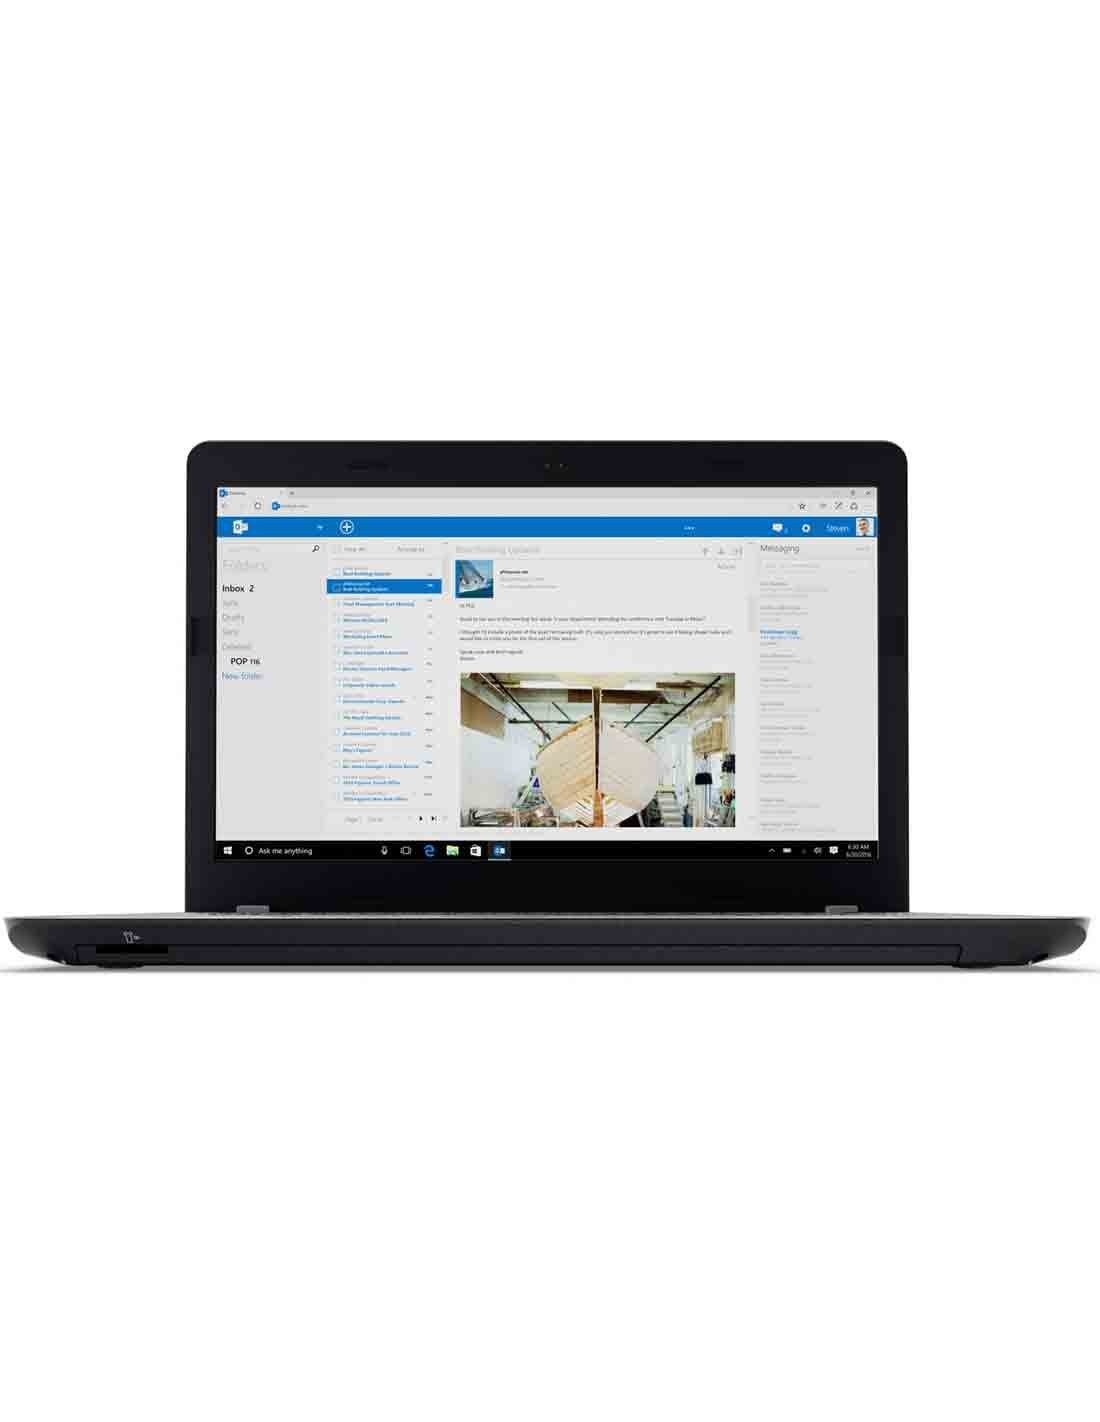 Buy Online Lenovo Thinkpad E570 Intel Core i7 which is a Business Notebook at a Cheap Price